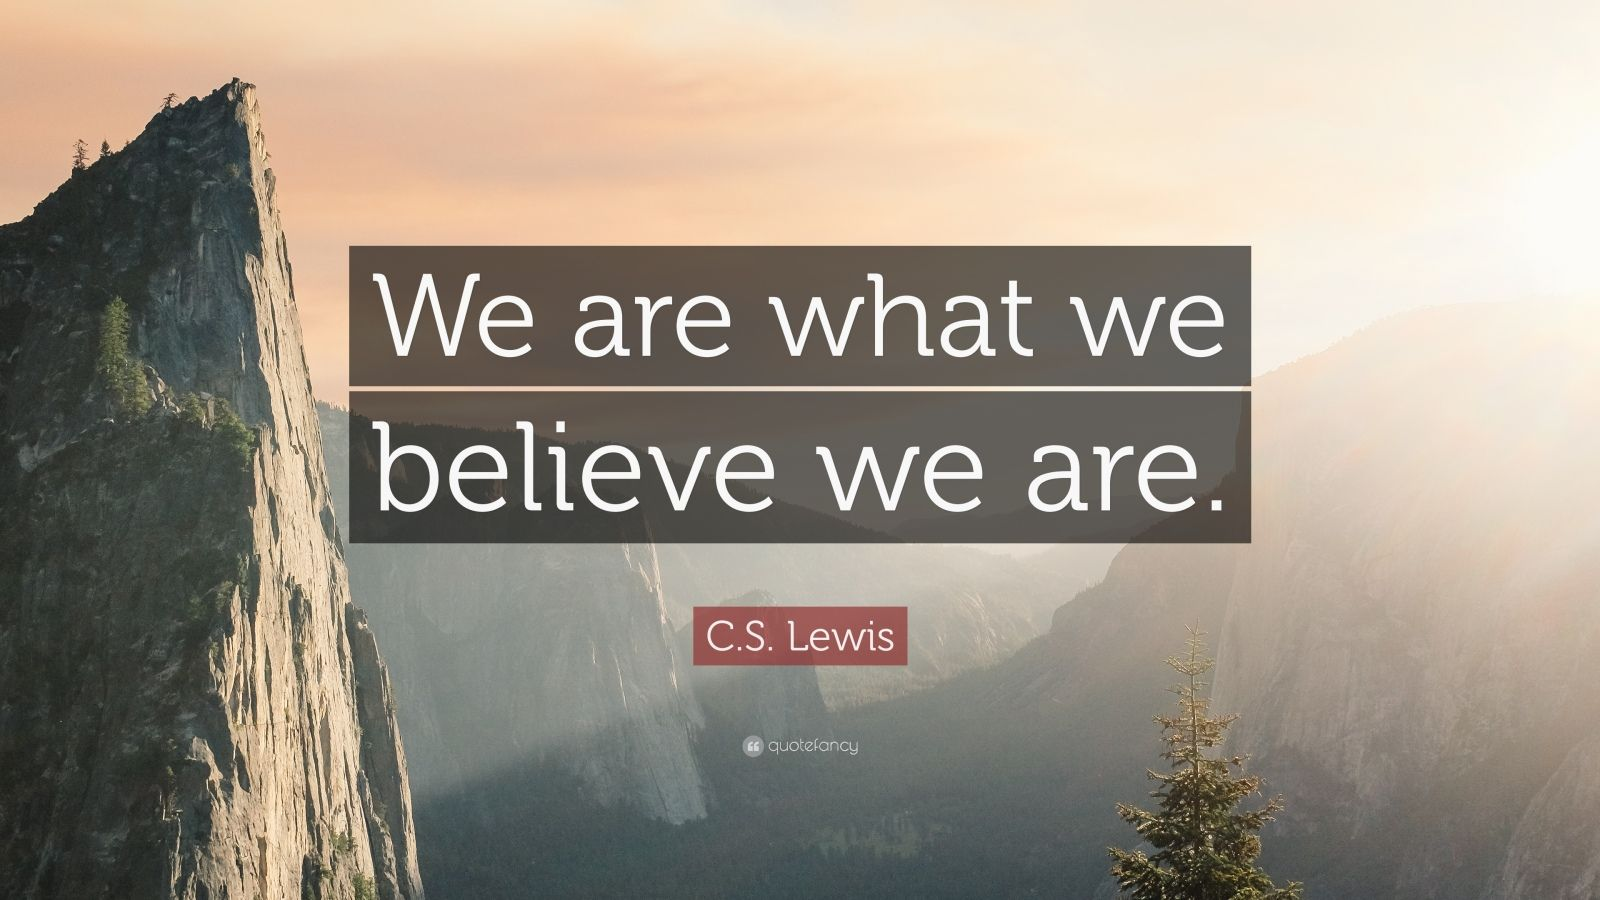 c.s. lewis essays on pride Clive staples lewis (29 november 1898 - 22 november 1963) was a british writer and lay theologian he held academic positions in english literature at both oxford university.